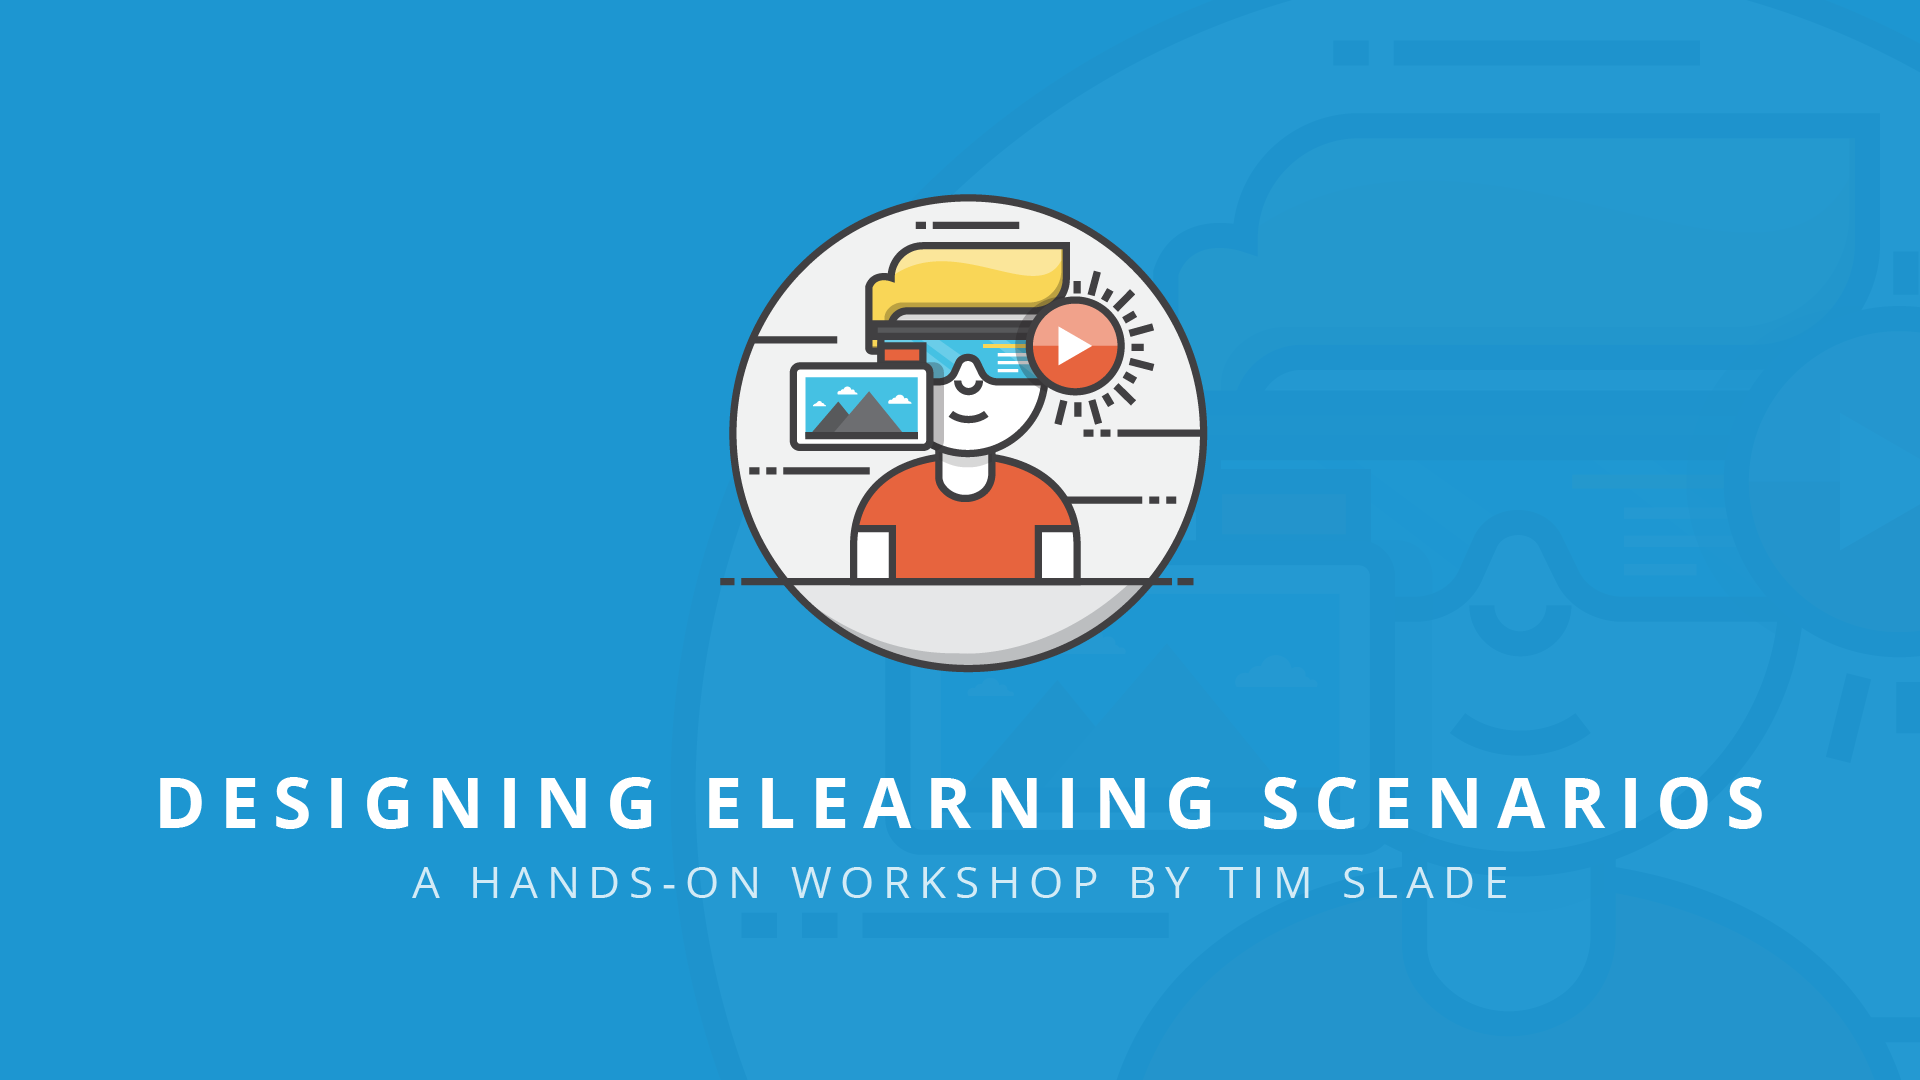 Designing eLearning Scenarios - eLearning Workshops by Tim Slade